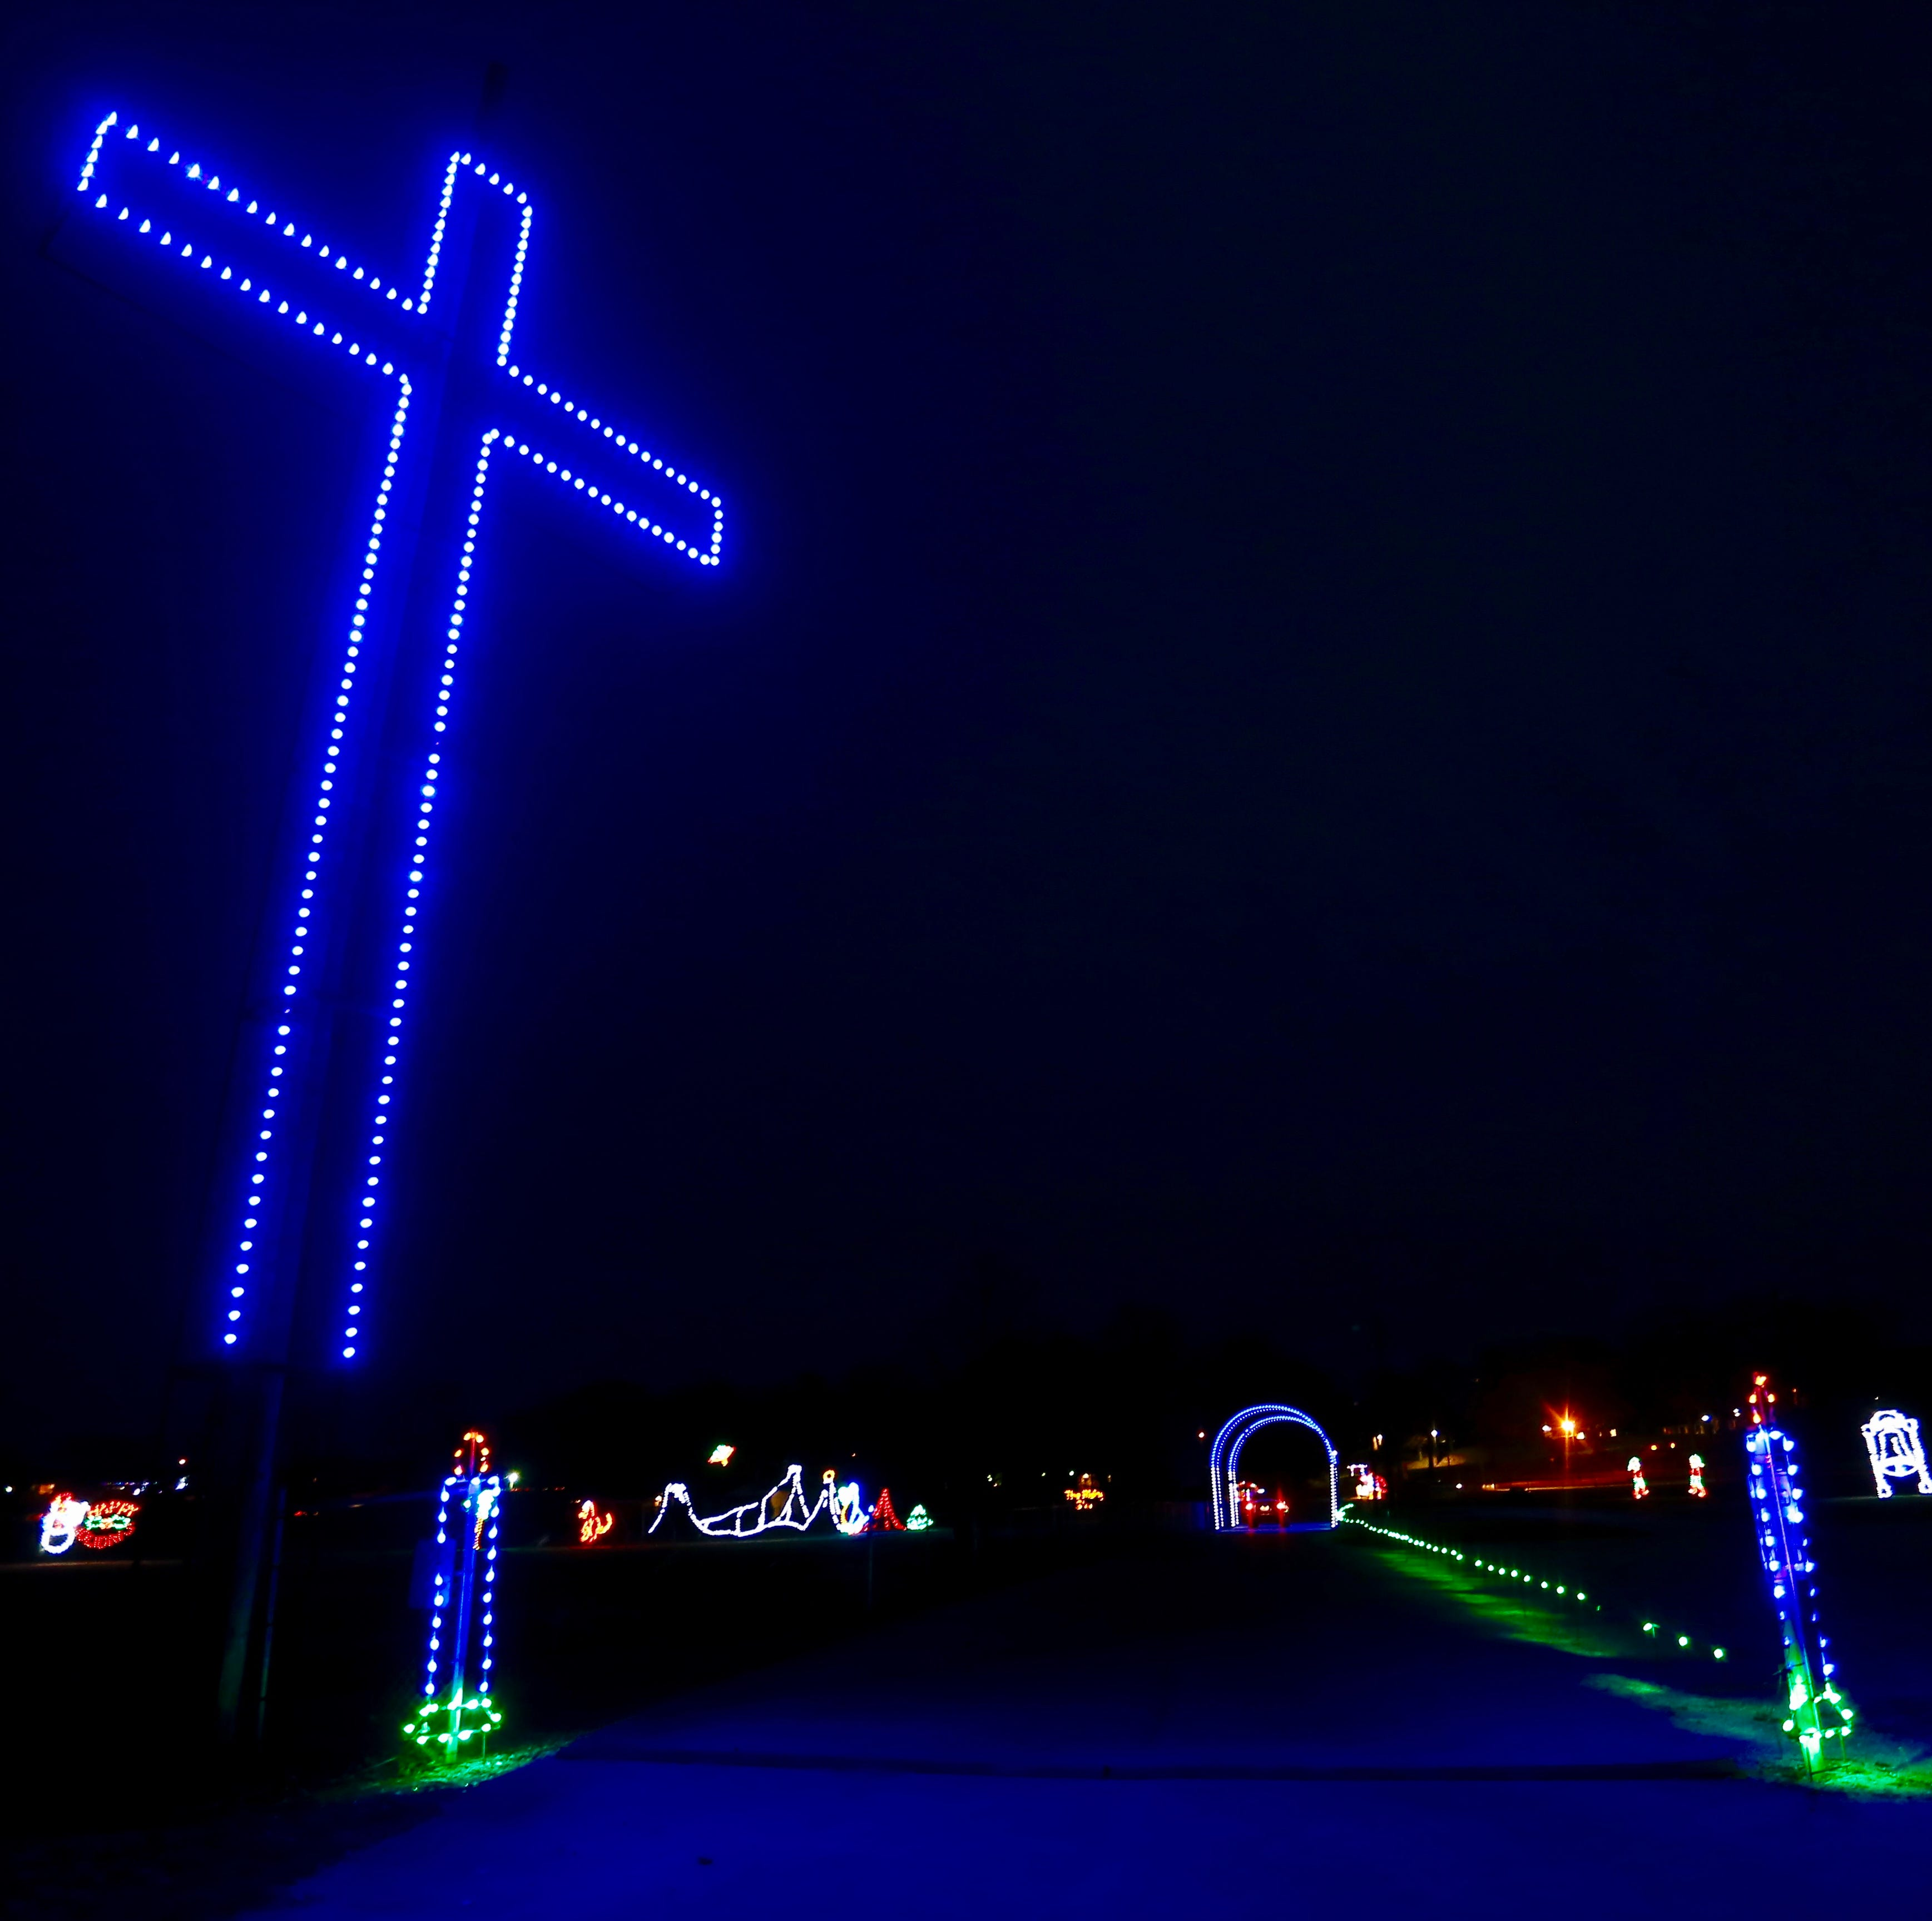 Ozark embroiled in controversy over cross in Finley River Park holiday lights display